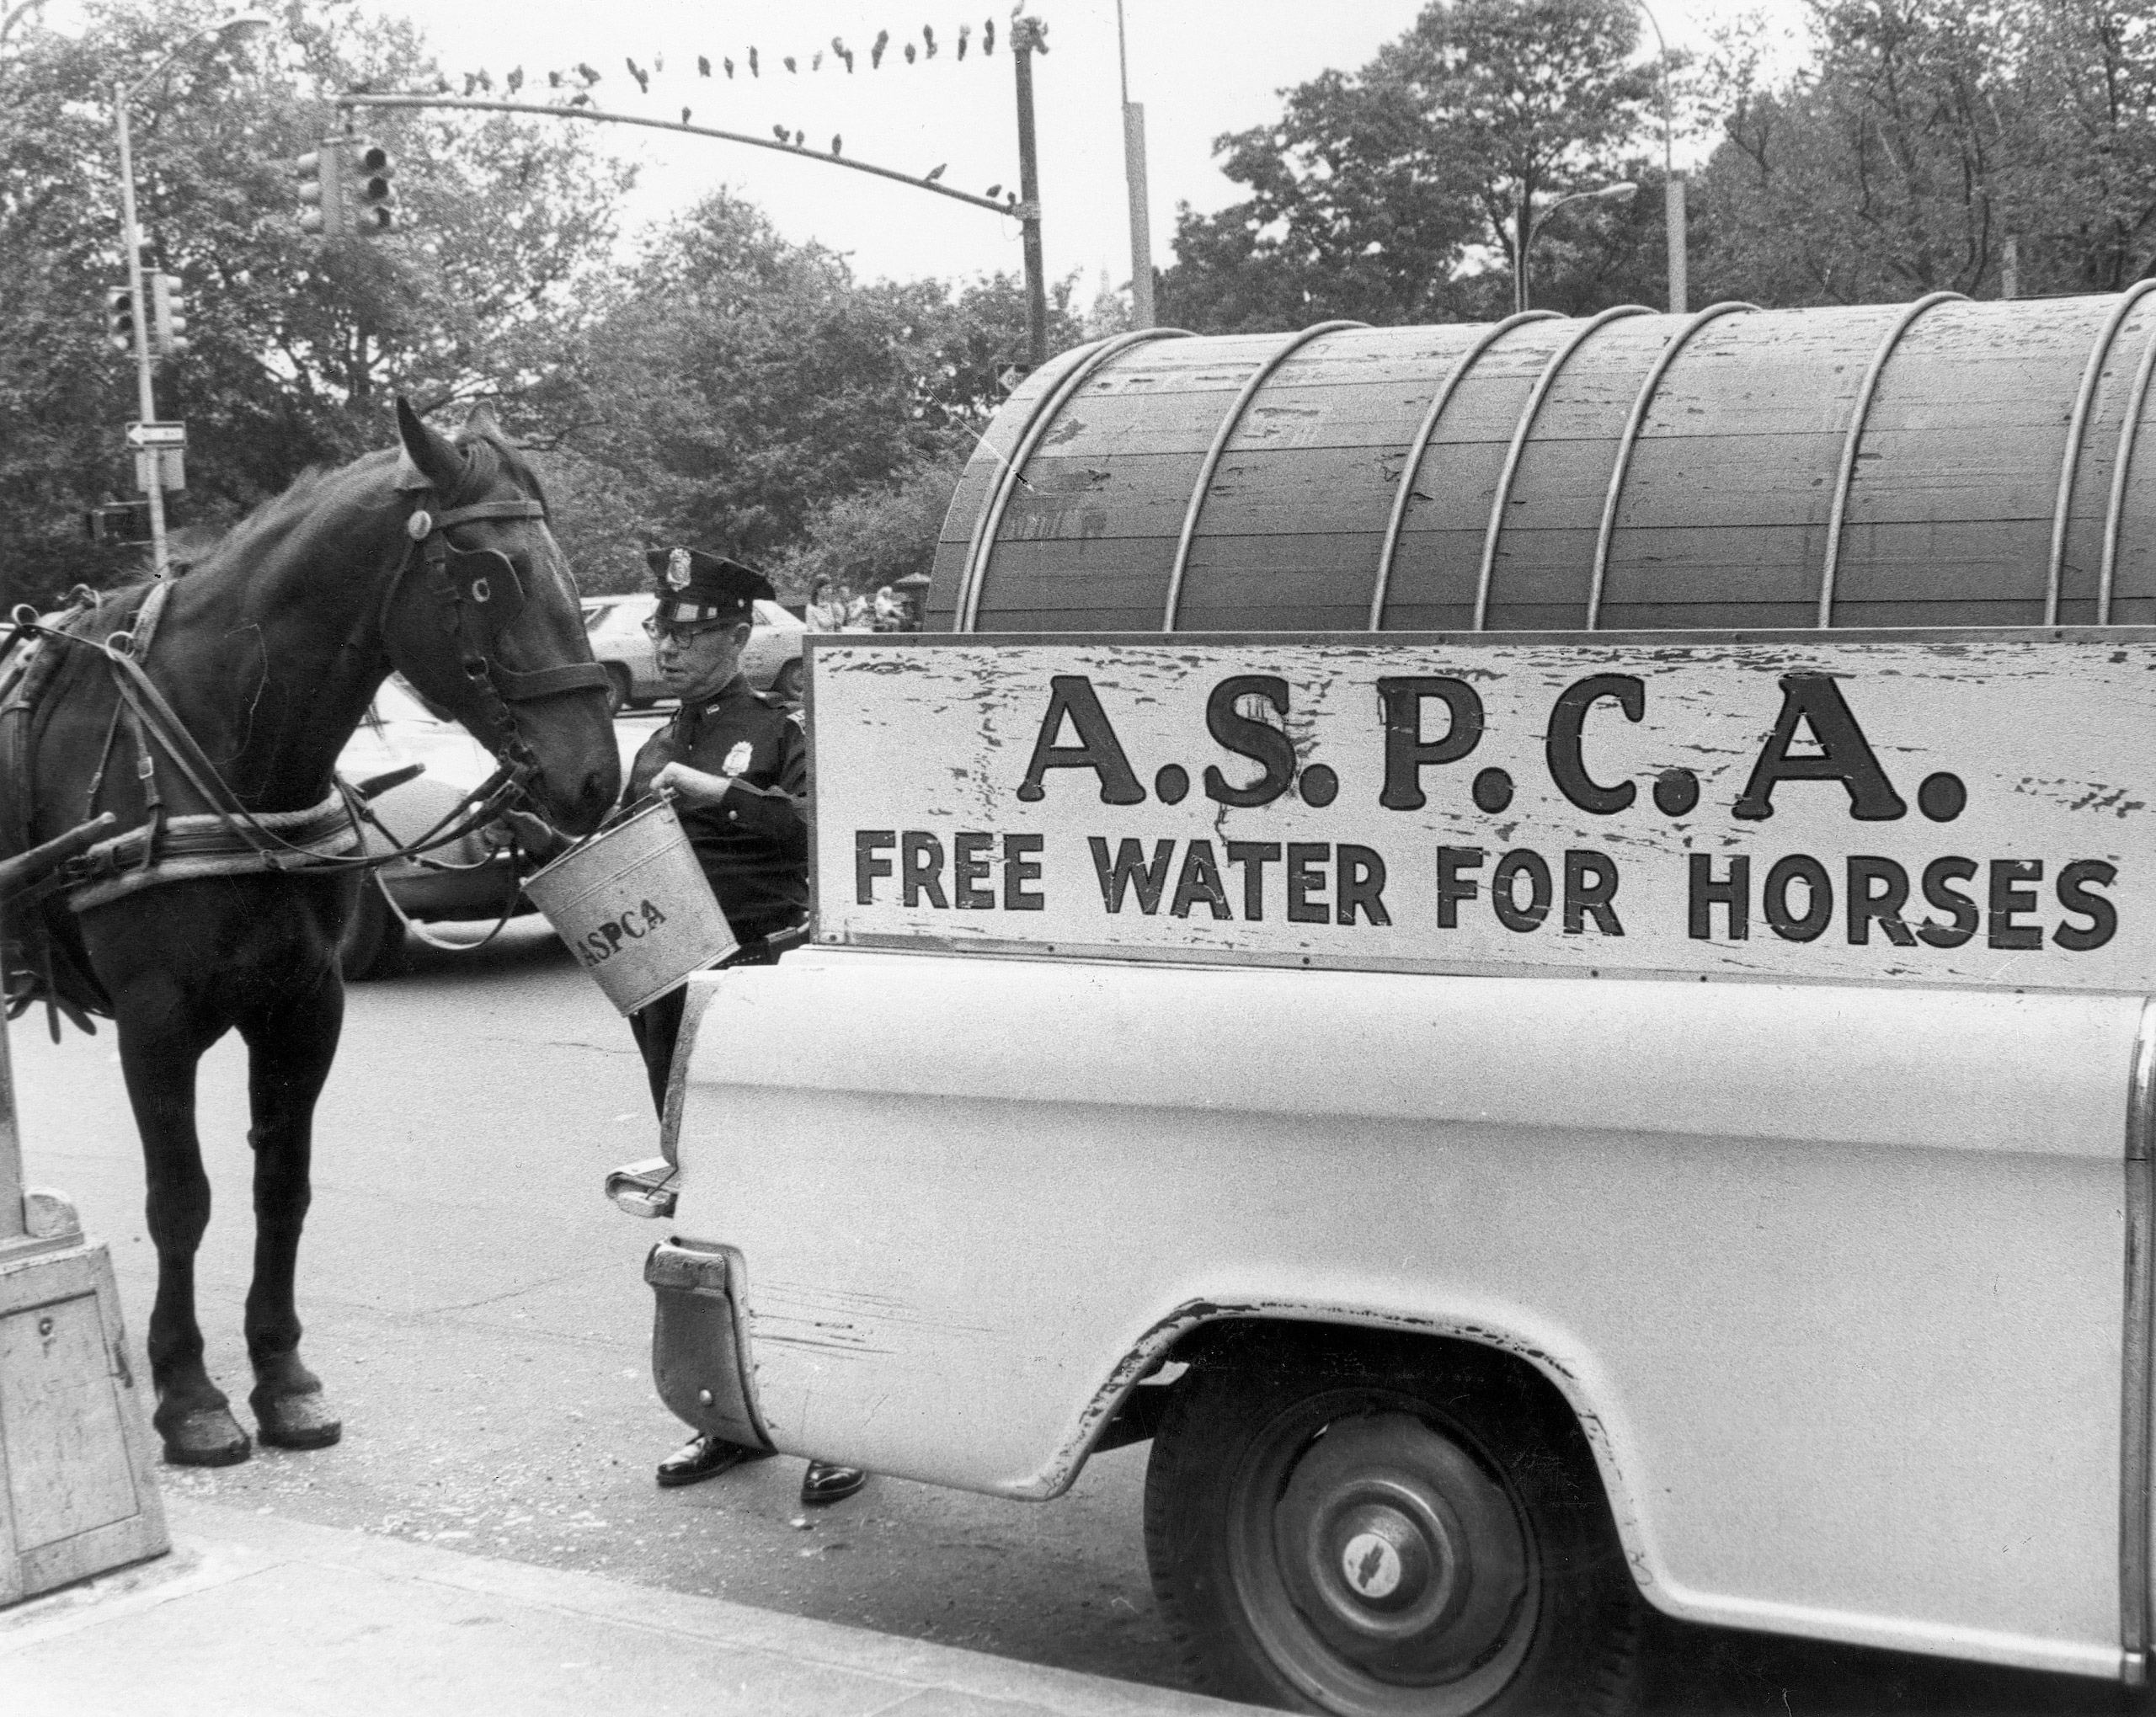 ASPCA horse watering service vehicle and agent provide a drink to a thirsty horse in NYC, 1960s.